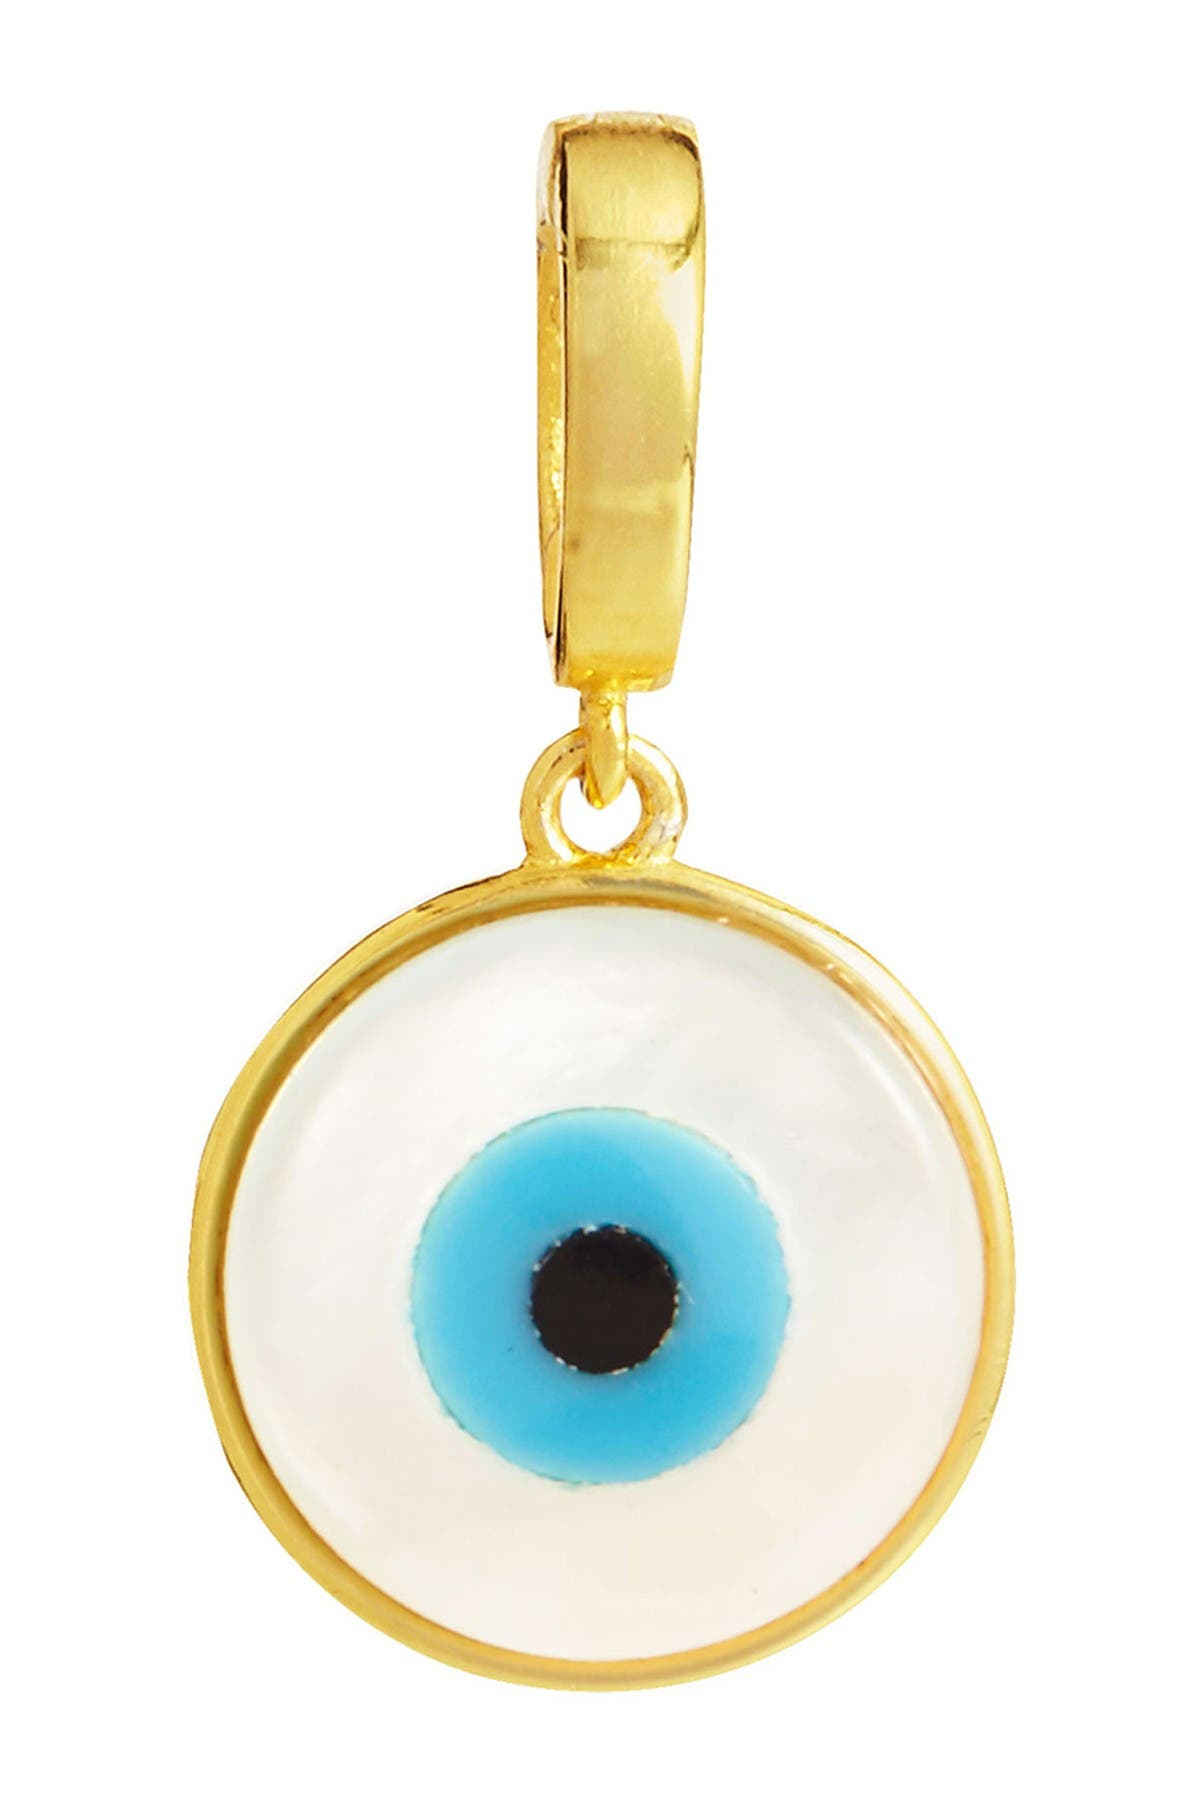 Image of Savvy Cie 18K Yellow Gold Vermeil Mother of Pearl Evil Eye Charm